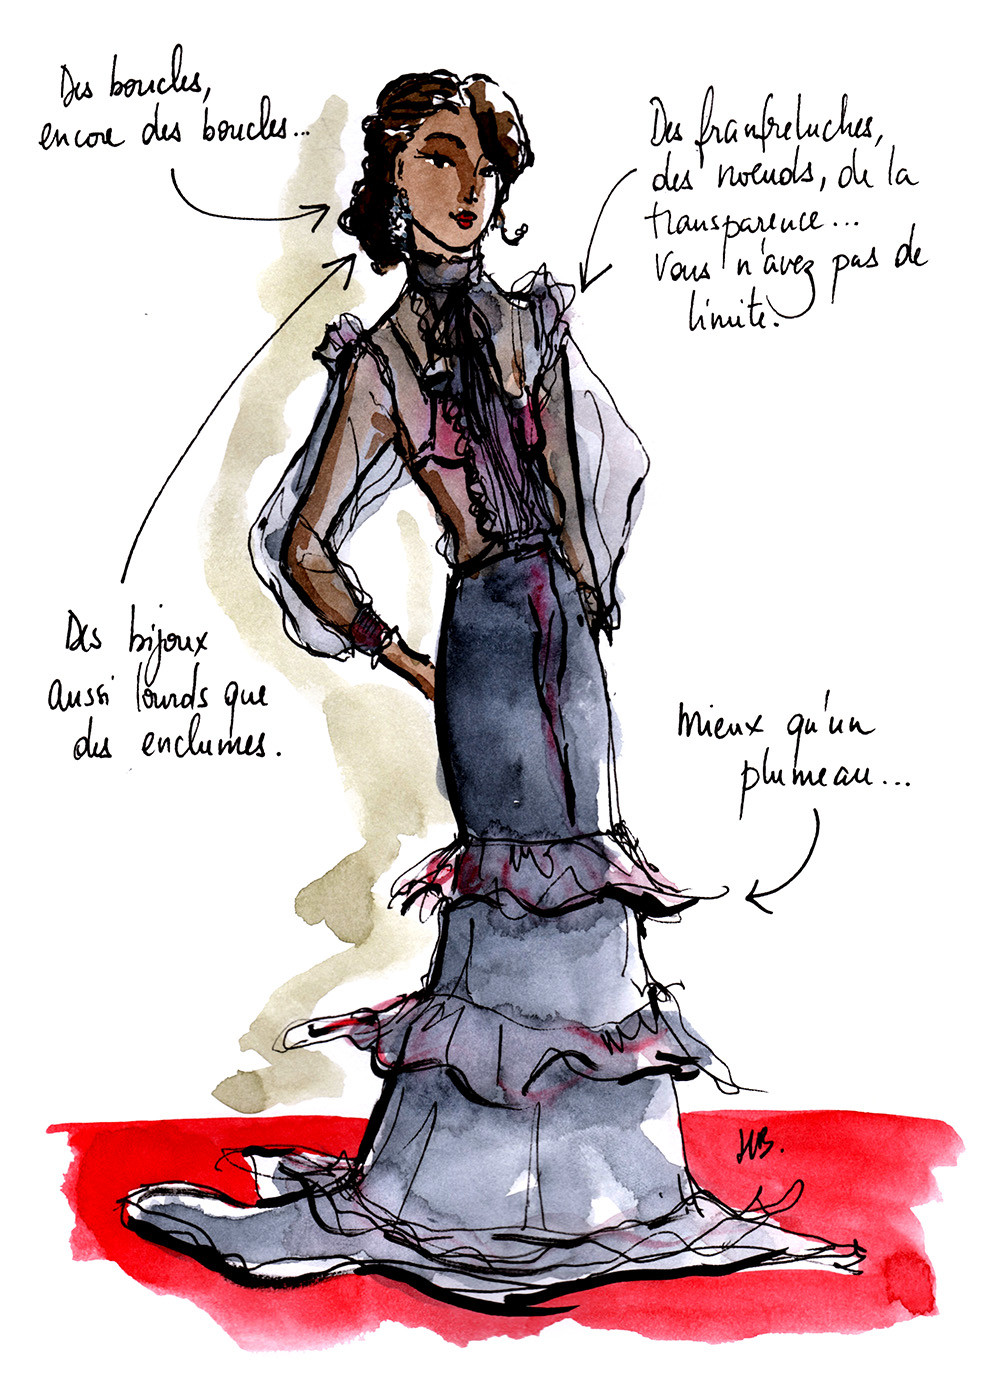 Tenue Festival de Cannes - La romantique - Dessin/Illustration Habile Buston